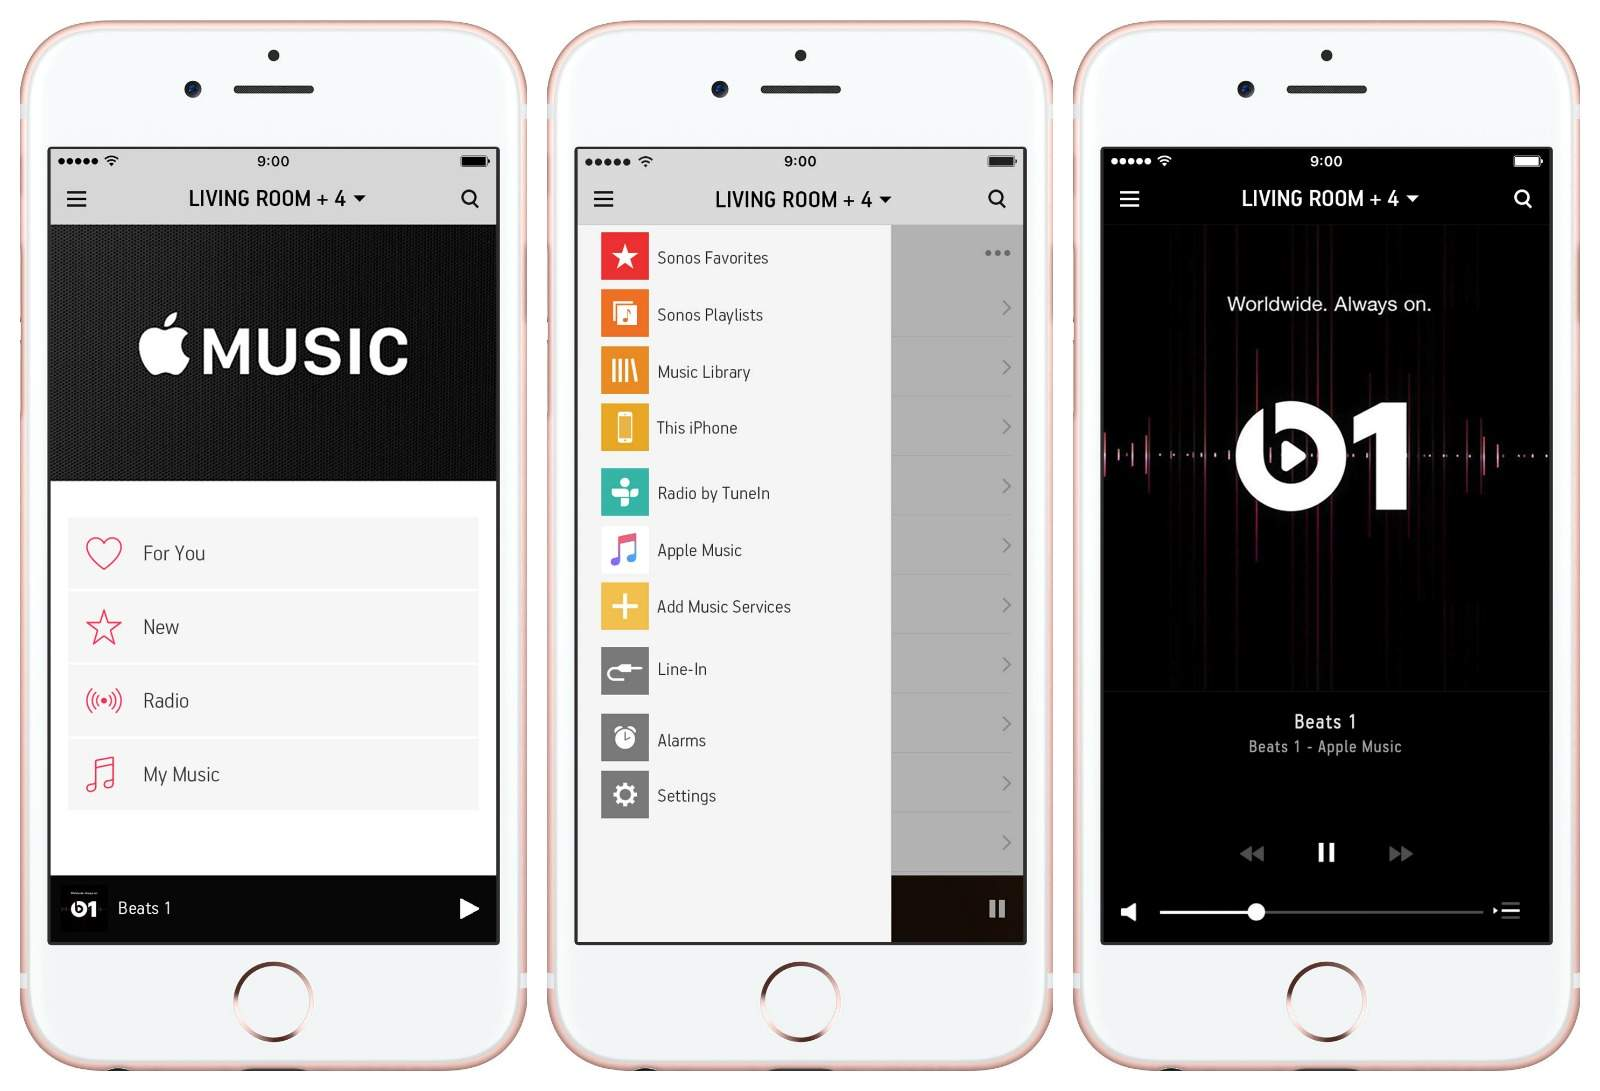 Apple Music is about to stream on Sonos smart speakers.